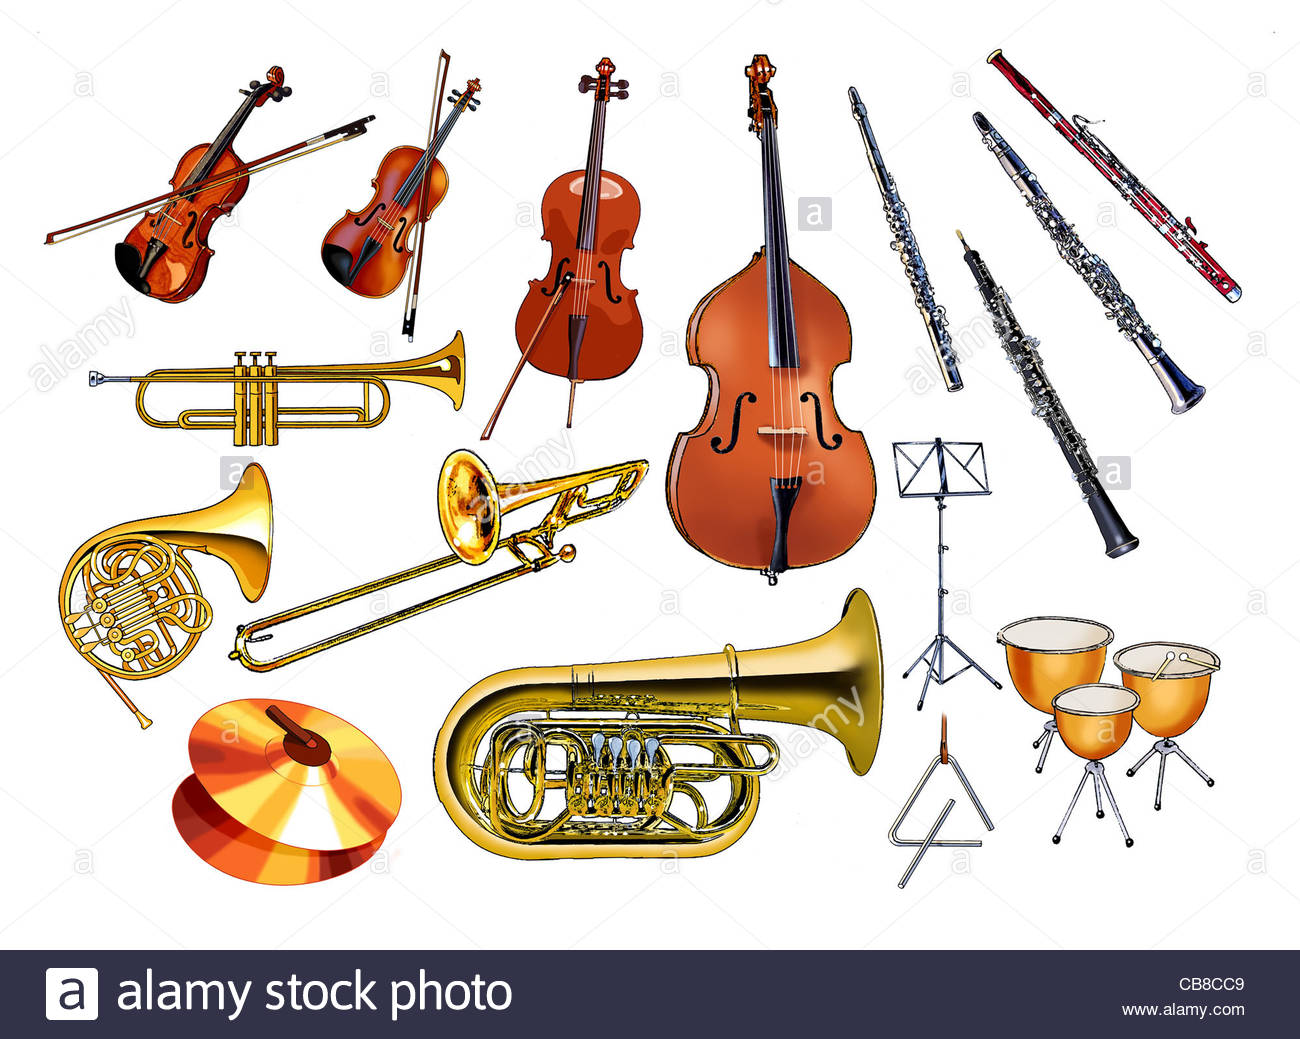 Orchestra Instruments Stock Photos & Orchestra Instruments Stock ...